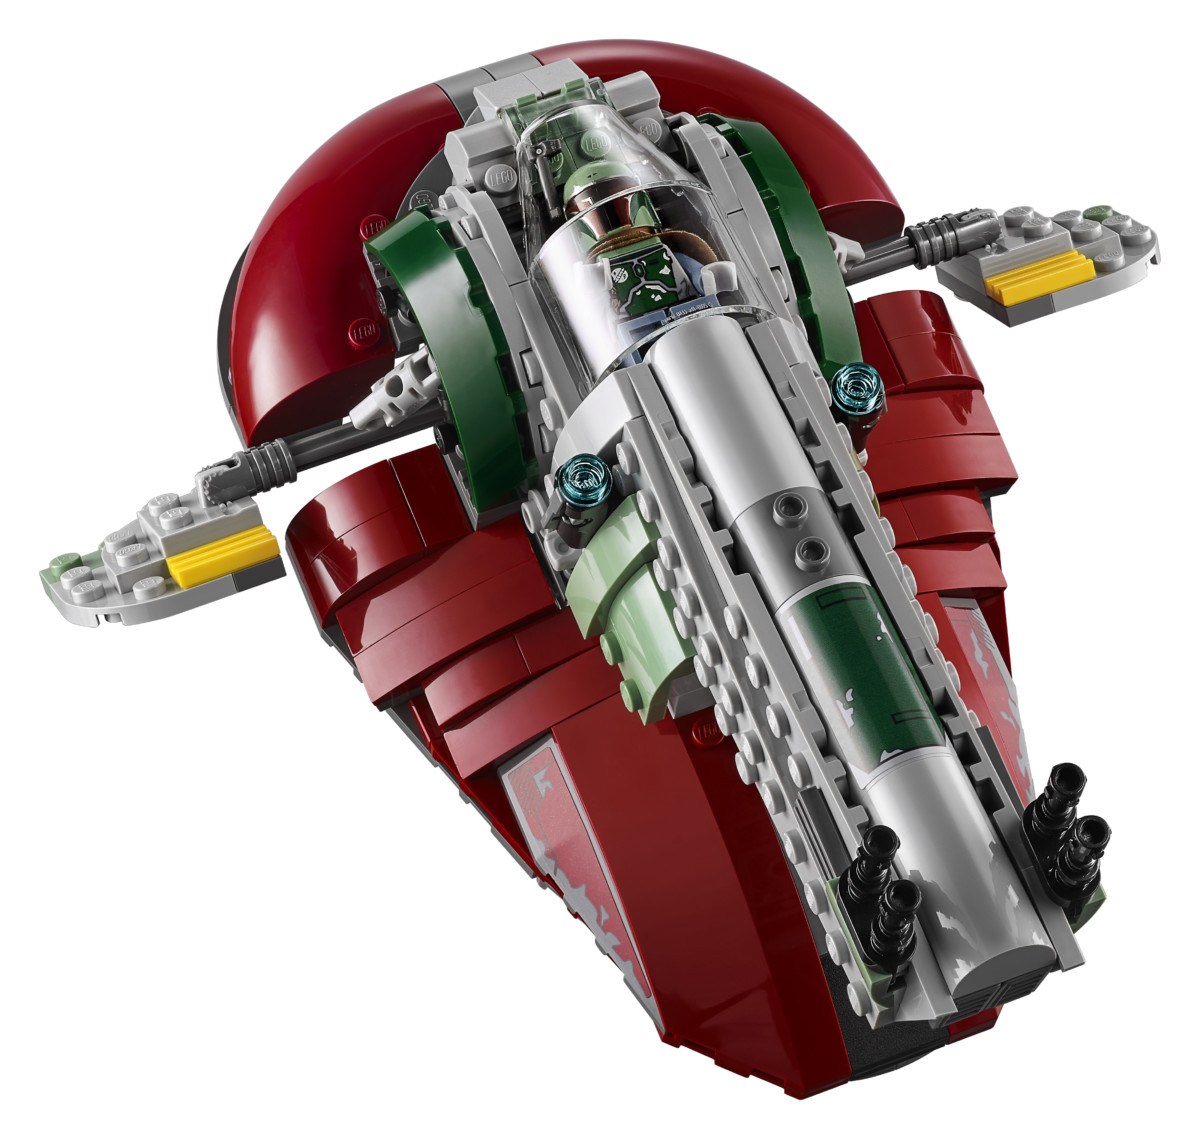 75222 back 02 - LEGO's Star Wars Betrayal at Cloud City is a brilliant recreation of the Empire Strikes Back